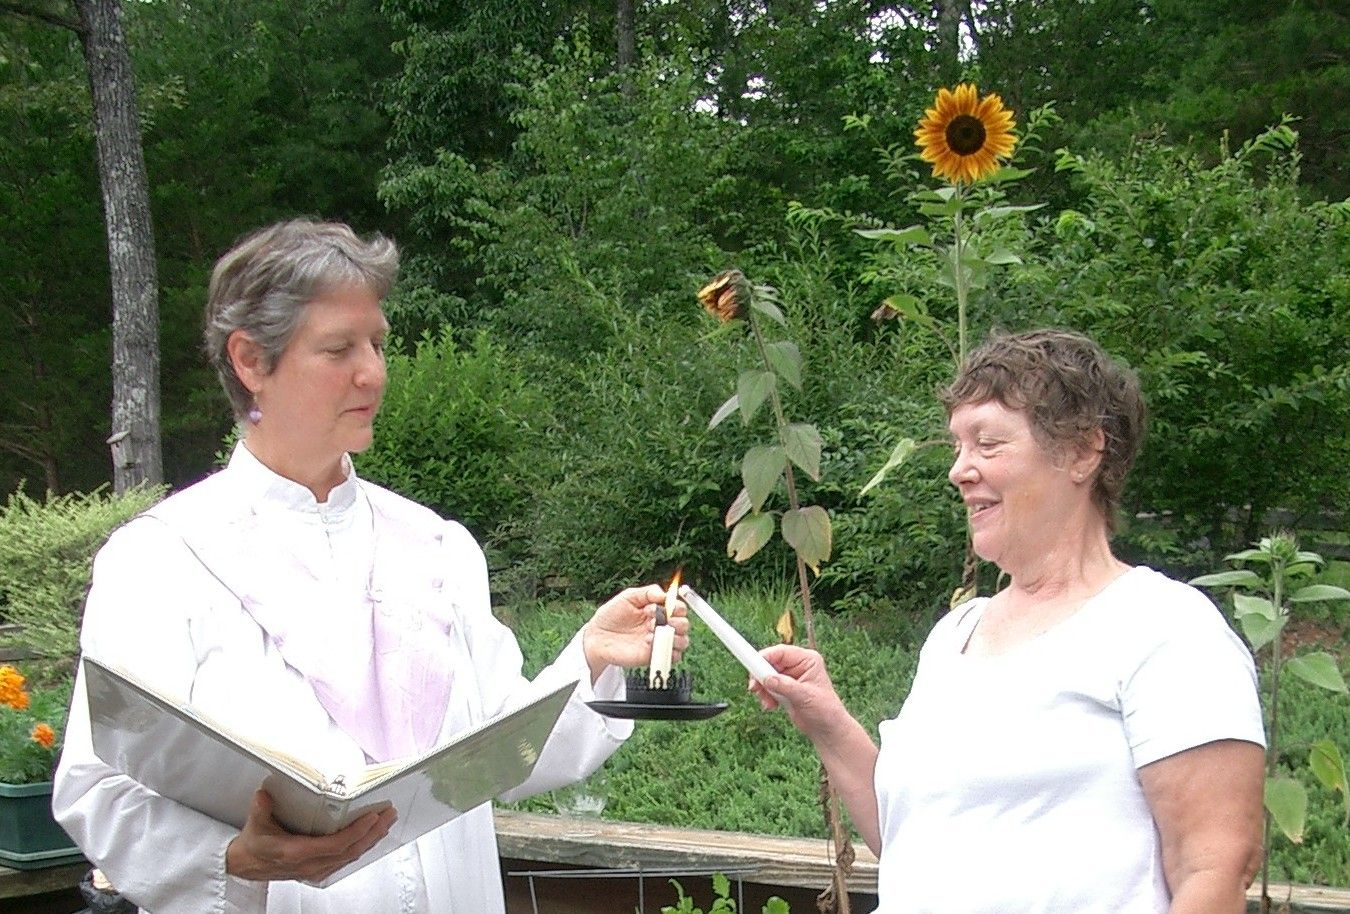 If You Feel A Calling To Become A Wedding Officiant Rev Dr Barbara Roberts Can Help You With That She Wedding Officiant Outdoor Wedding Alternative Wedding